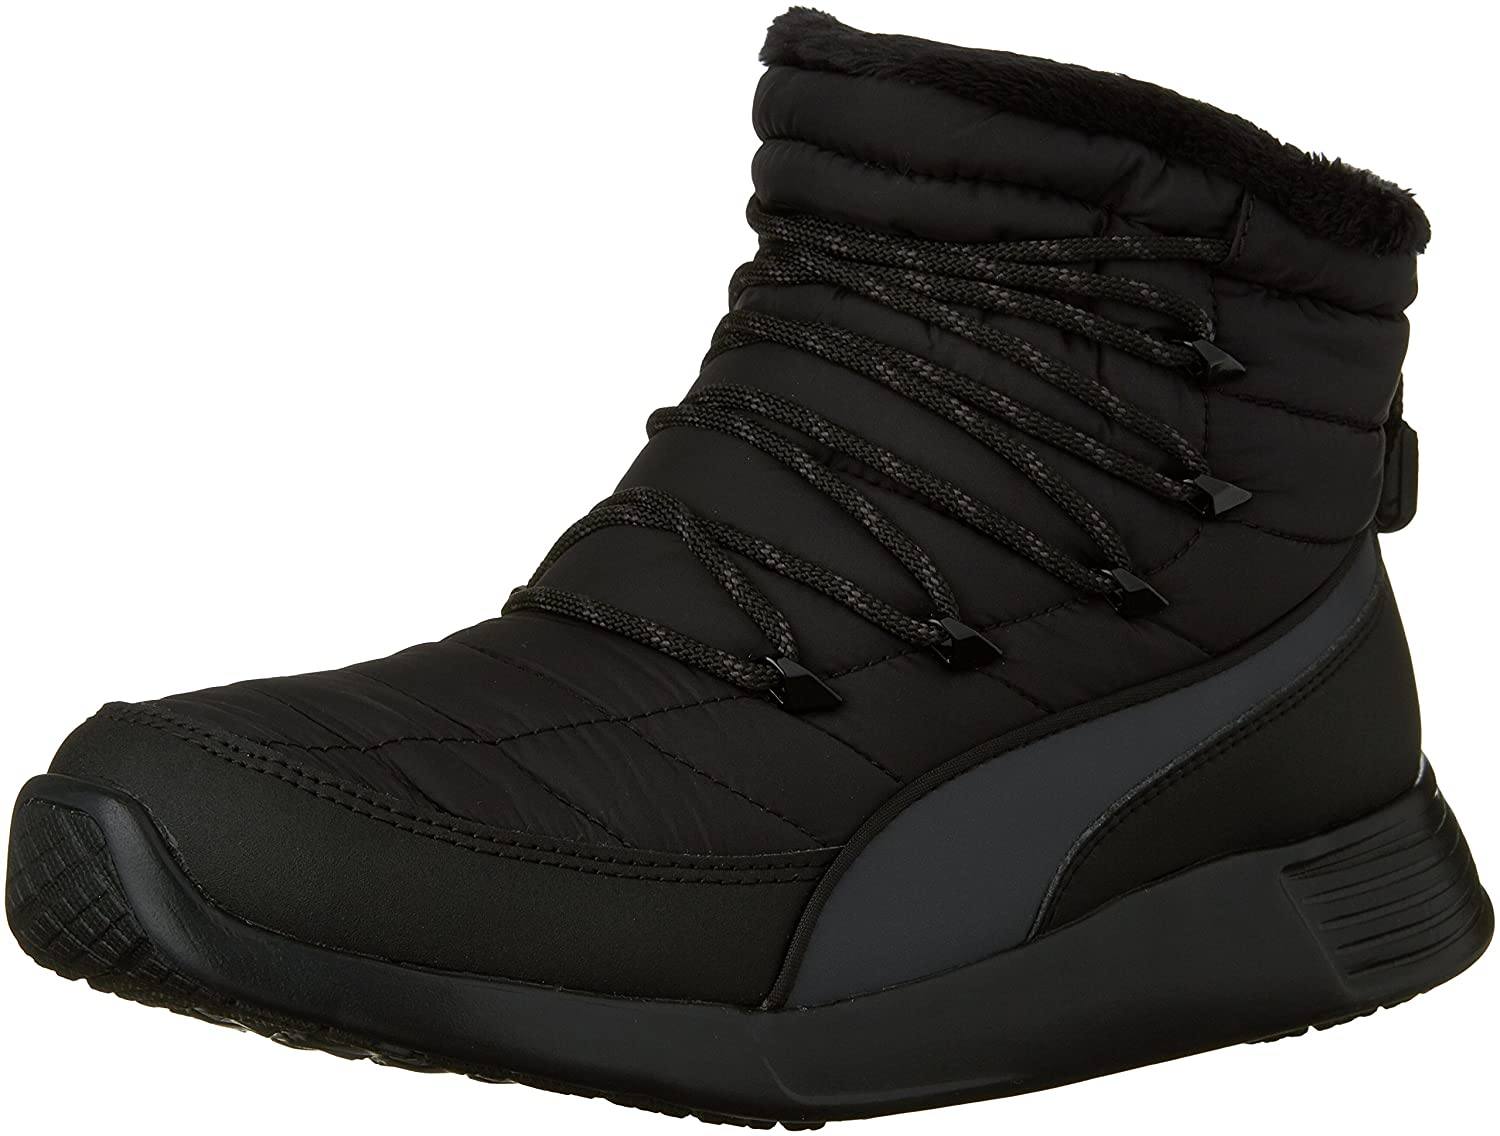 Running 5 Shoe Boot Black ca Us Winter M Puma 5 Women's St Amazon aqfxIC